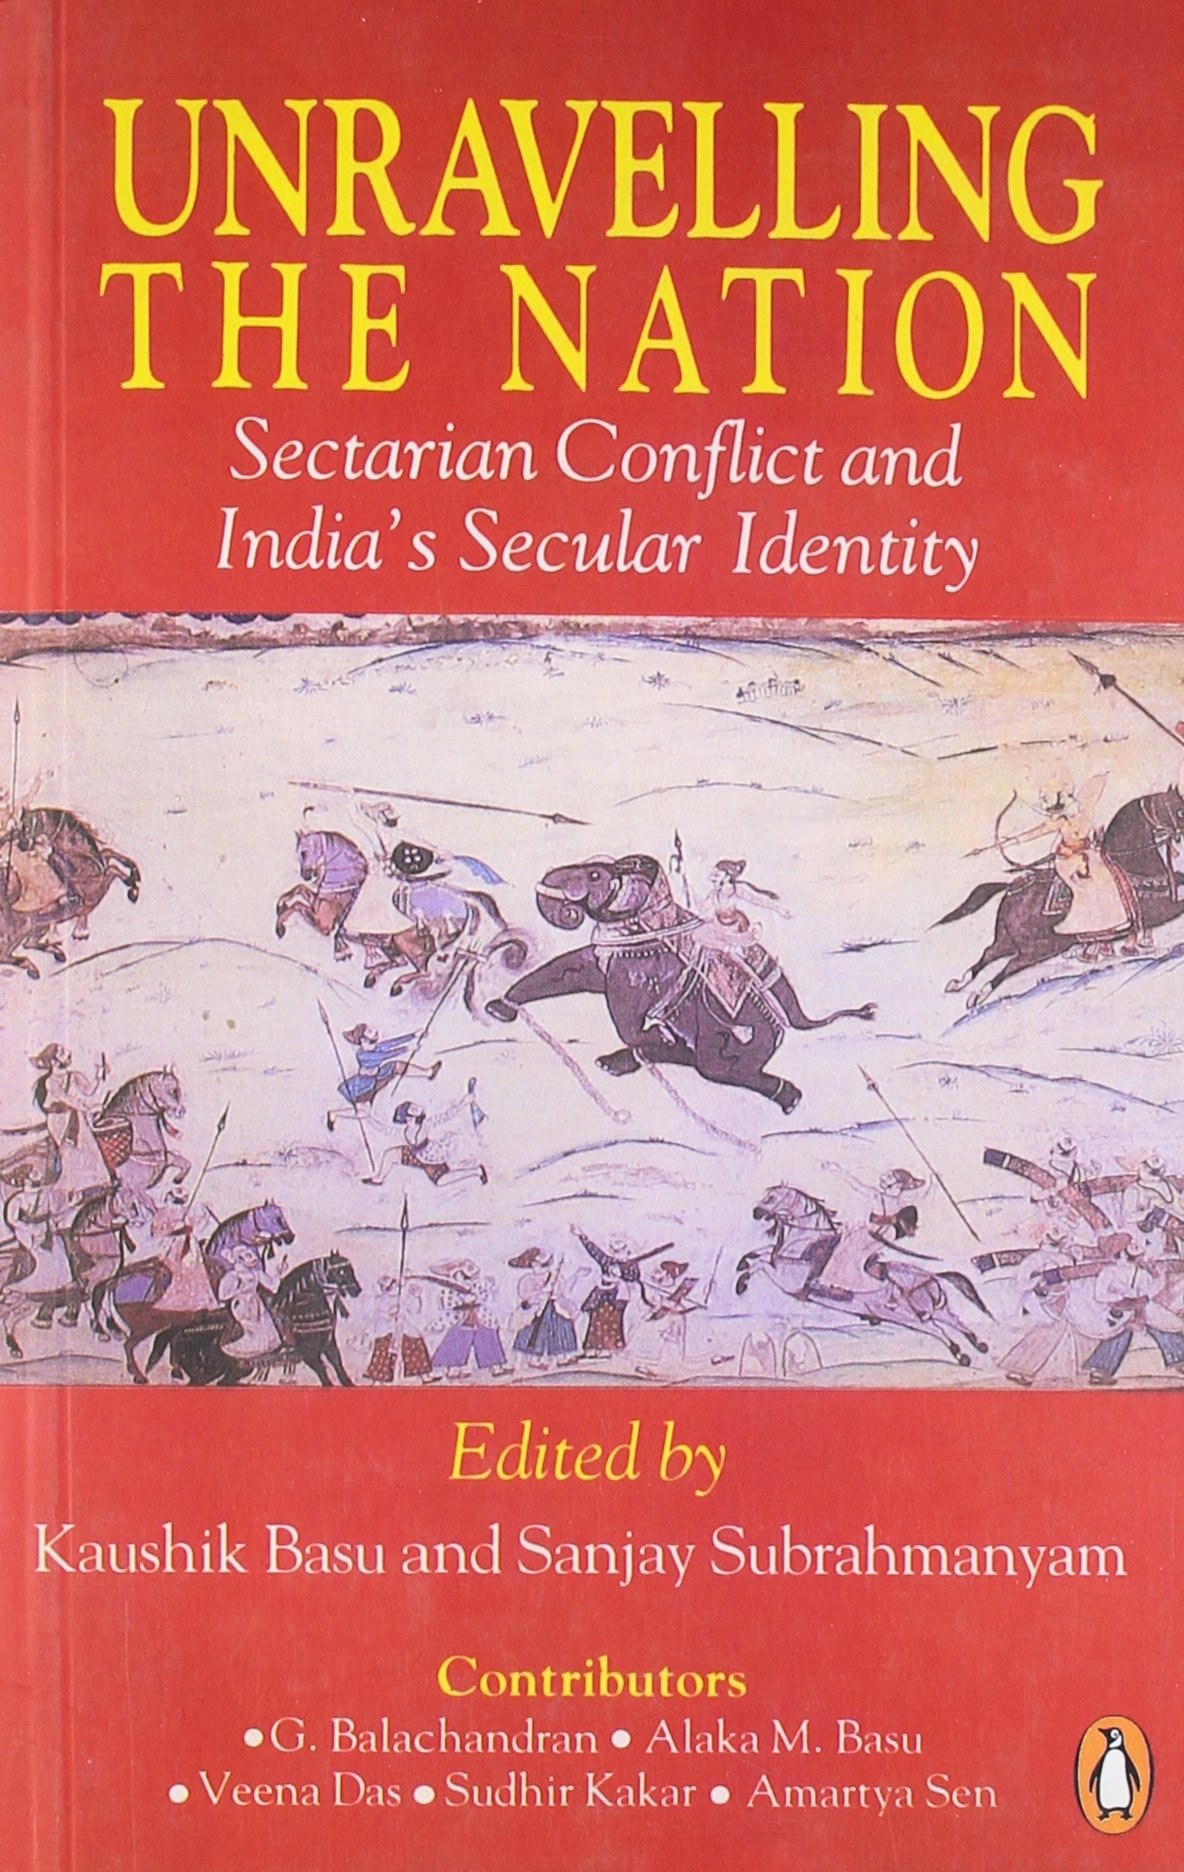 Image result for Unravelling the Nation: Sectarian Conflict and India's Secular Identity